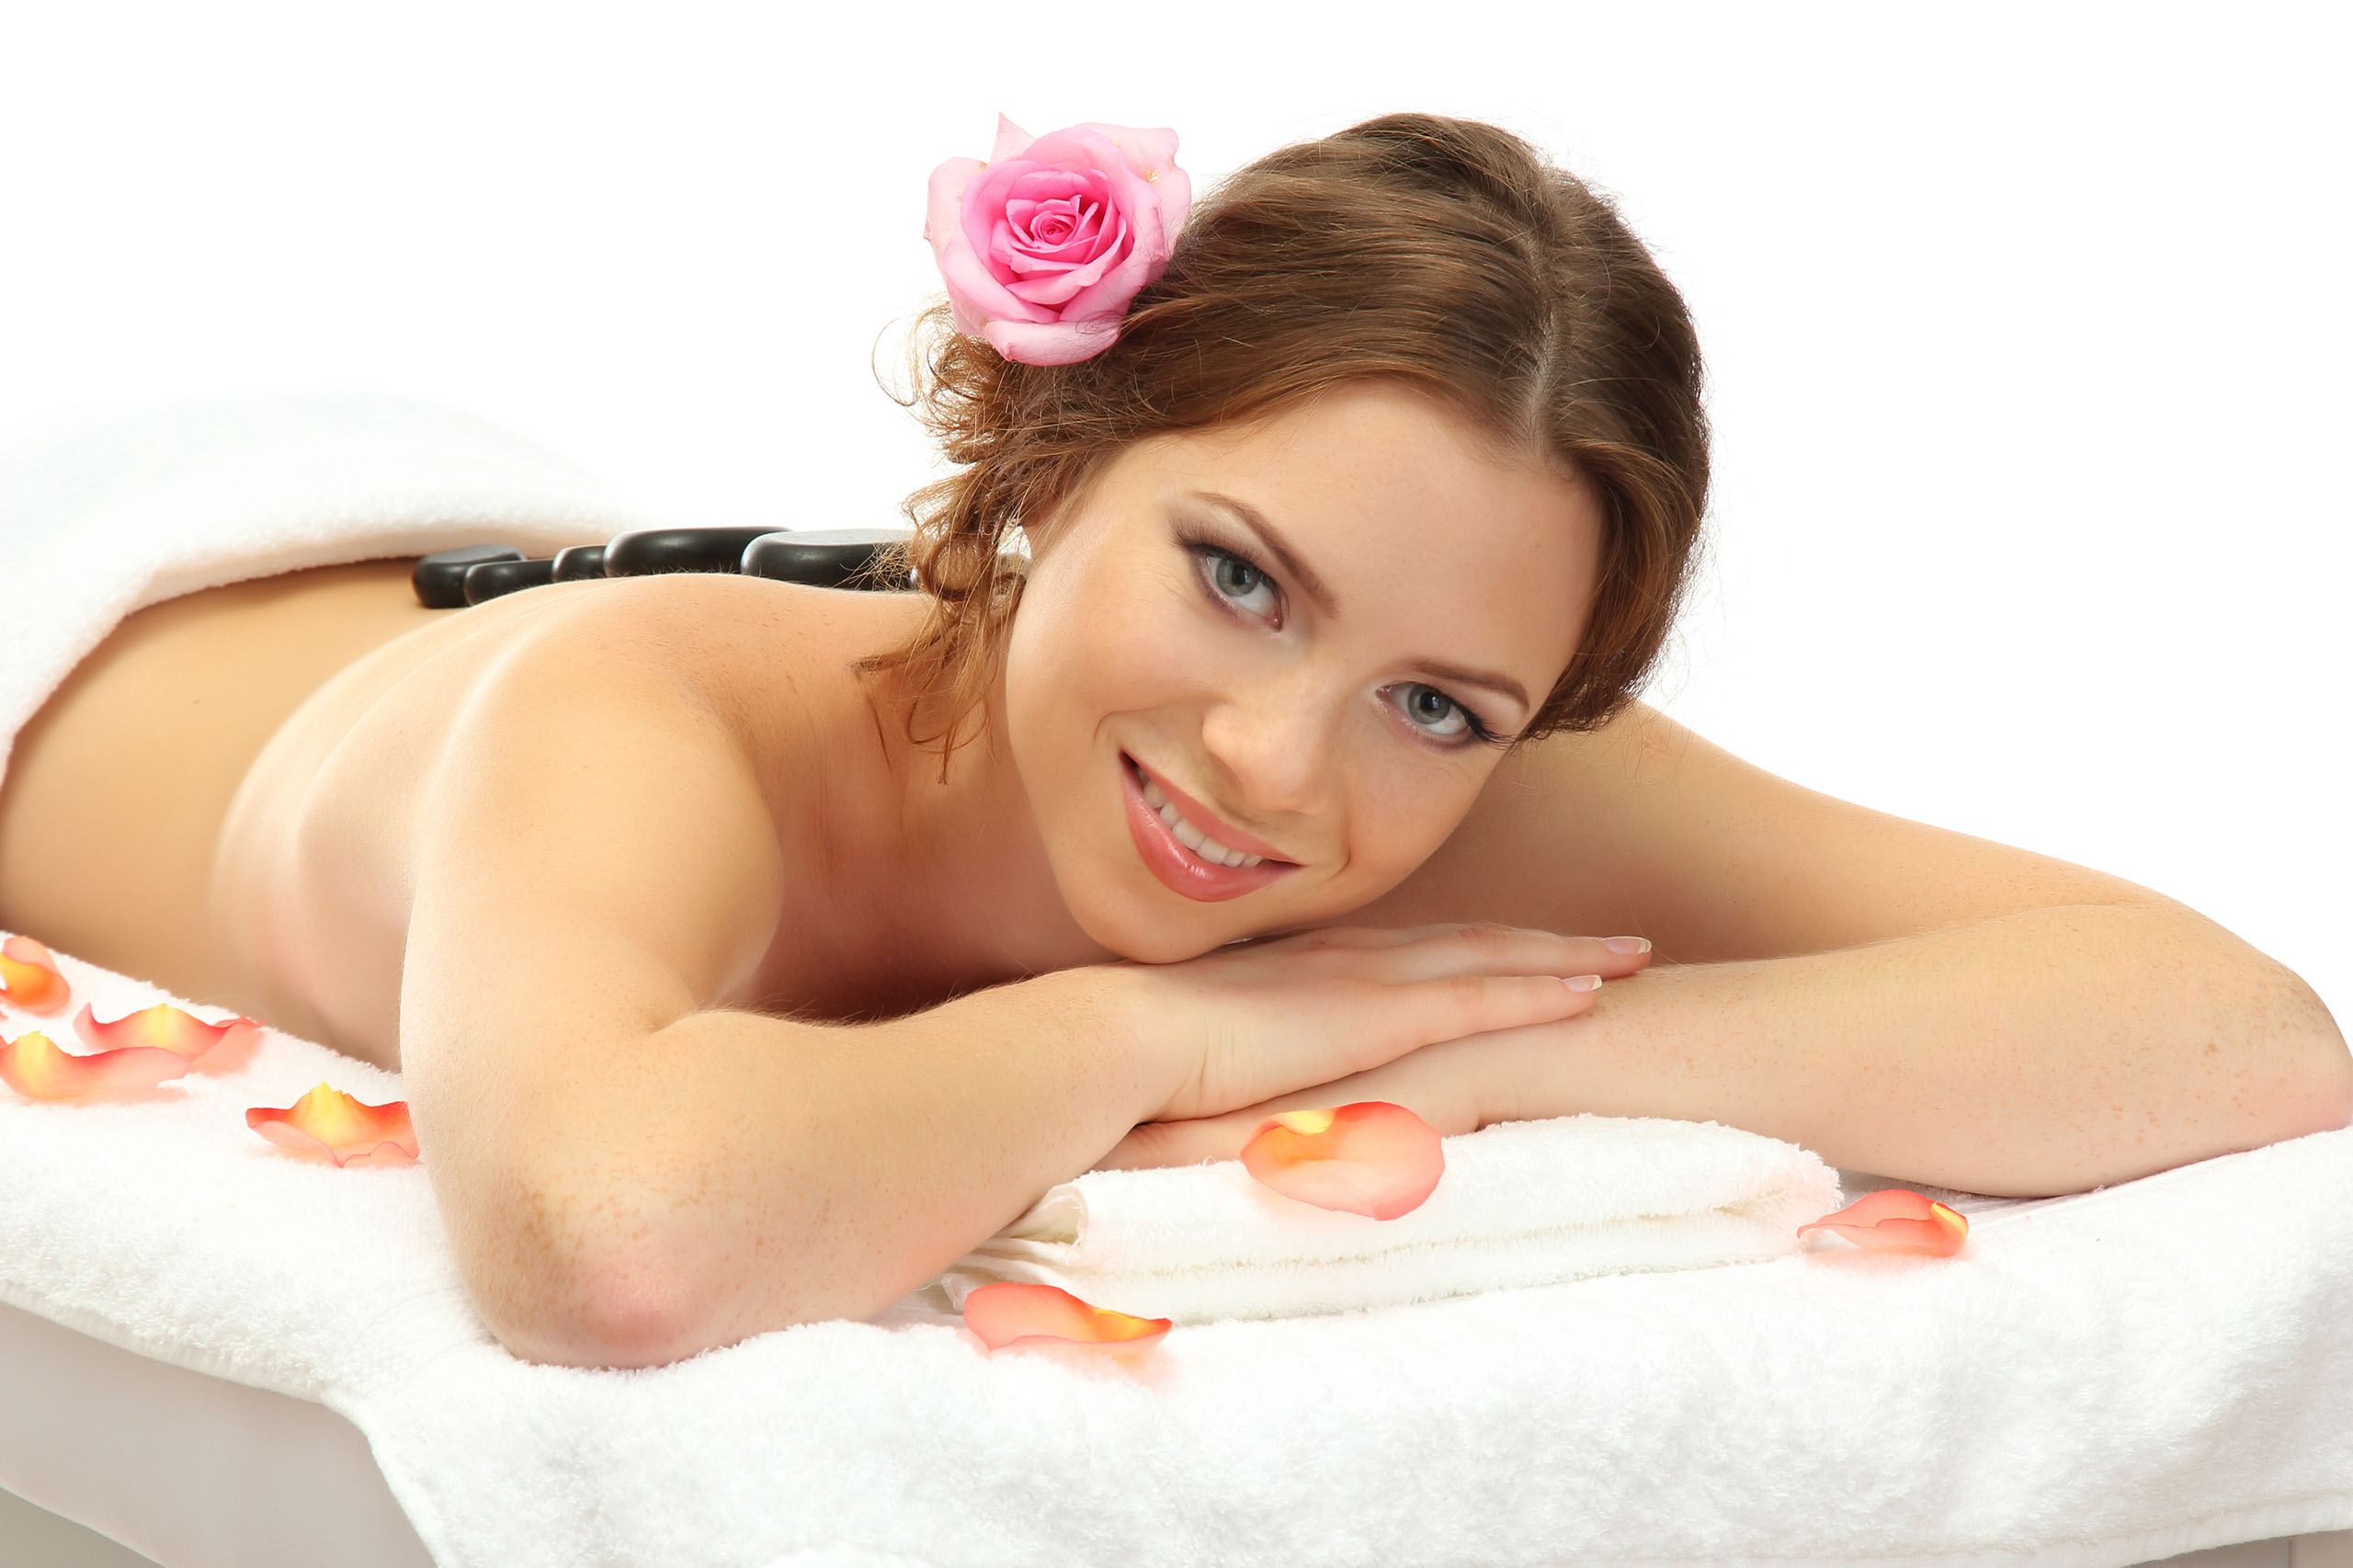 Thai Massage Benefits, Techniques, What to Expect